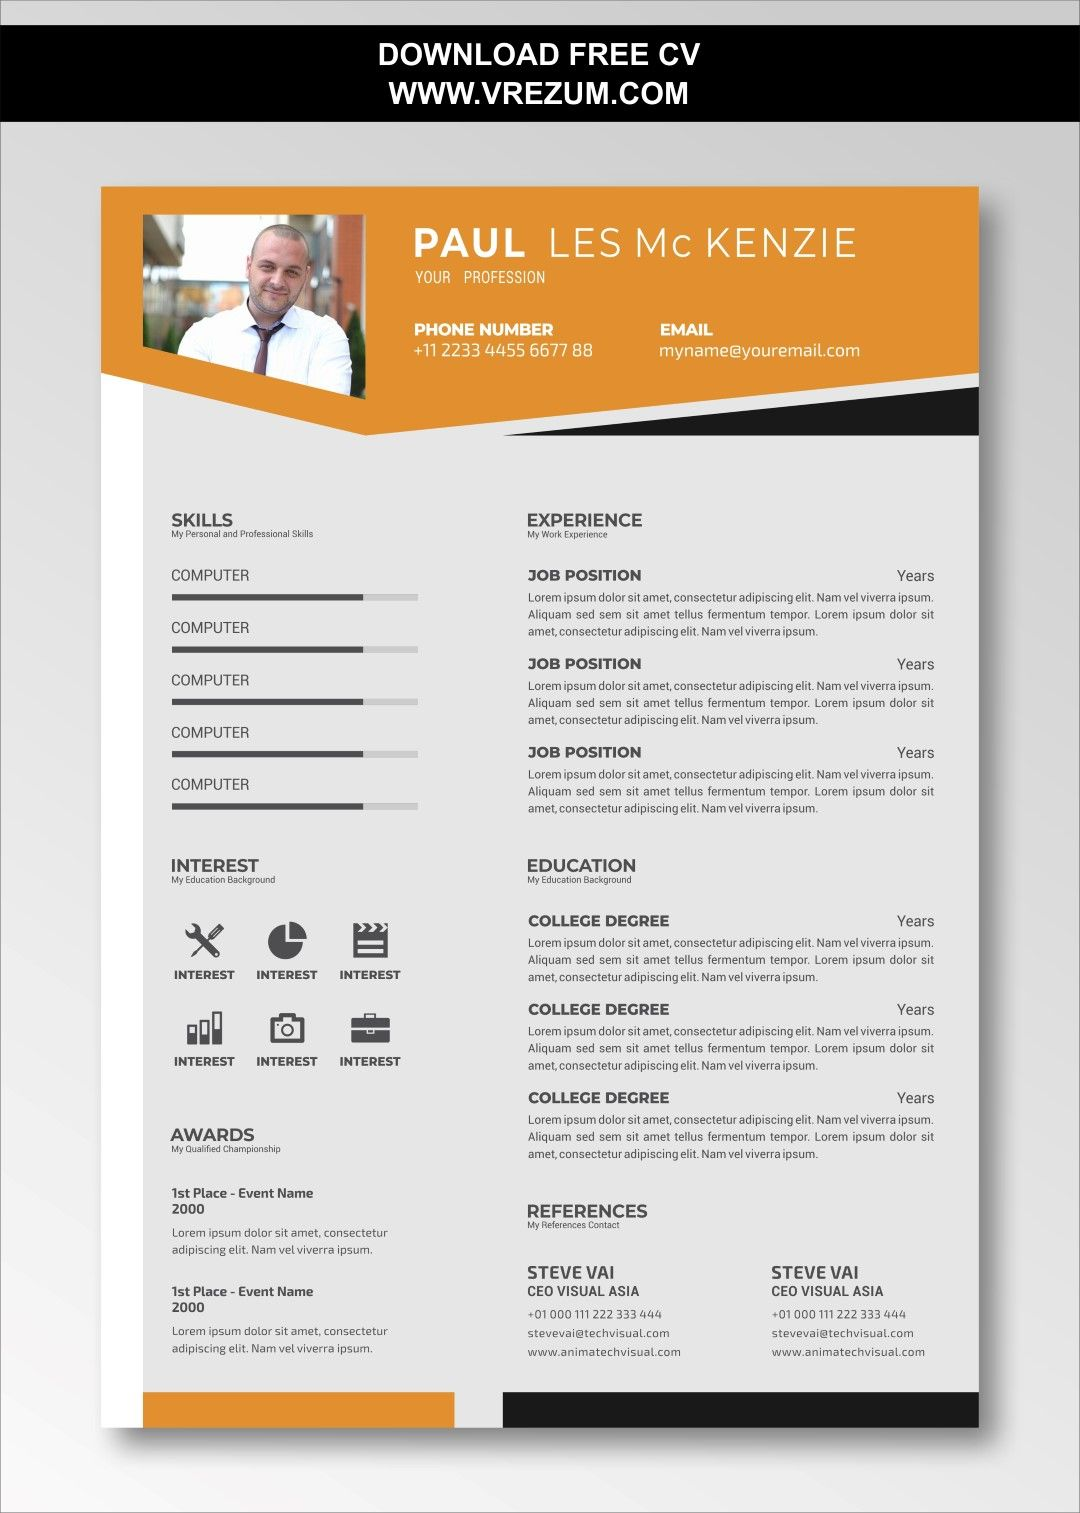 (EDITABLE) FREE CV Templates For Factory Worker in 2020